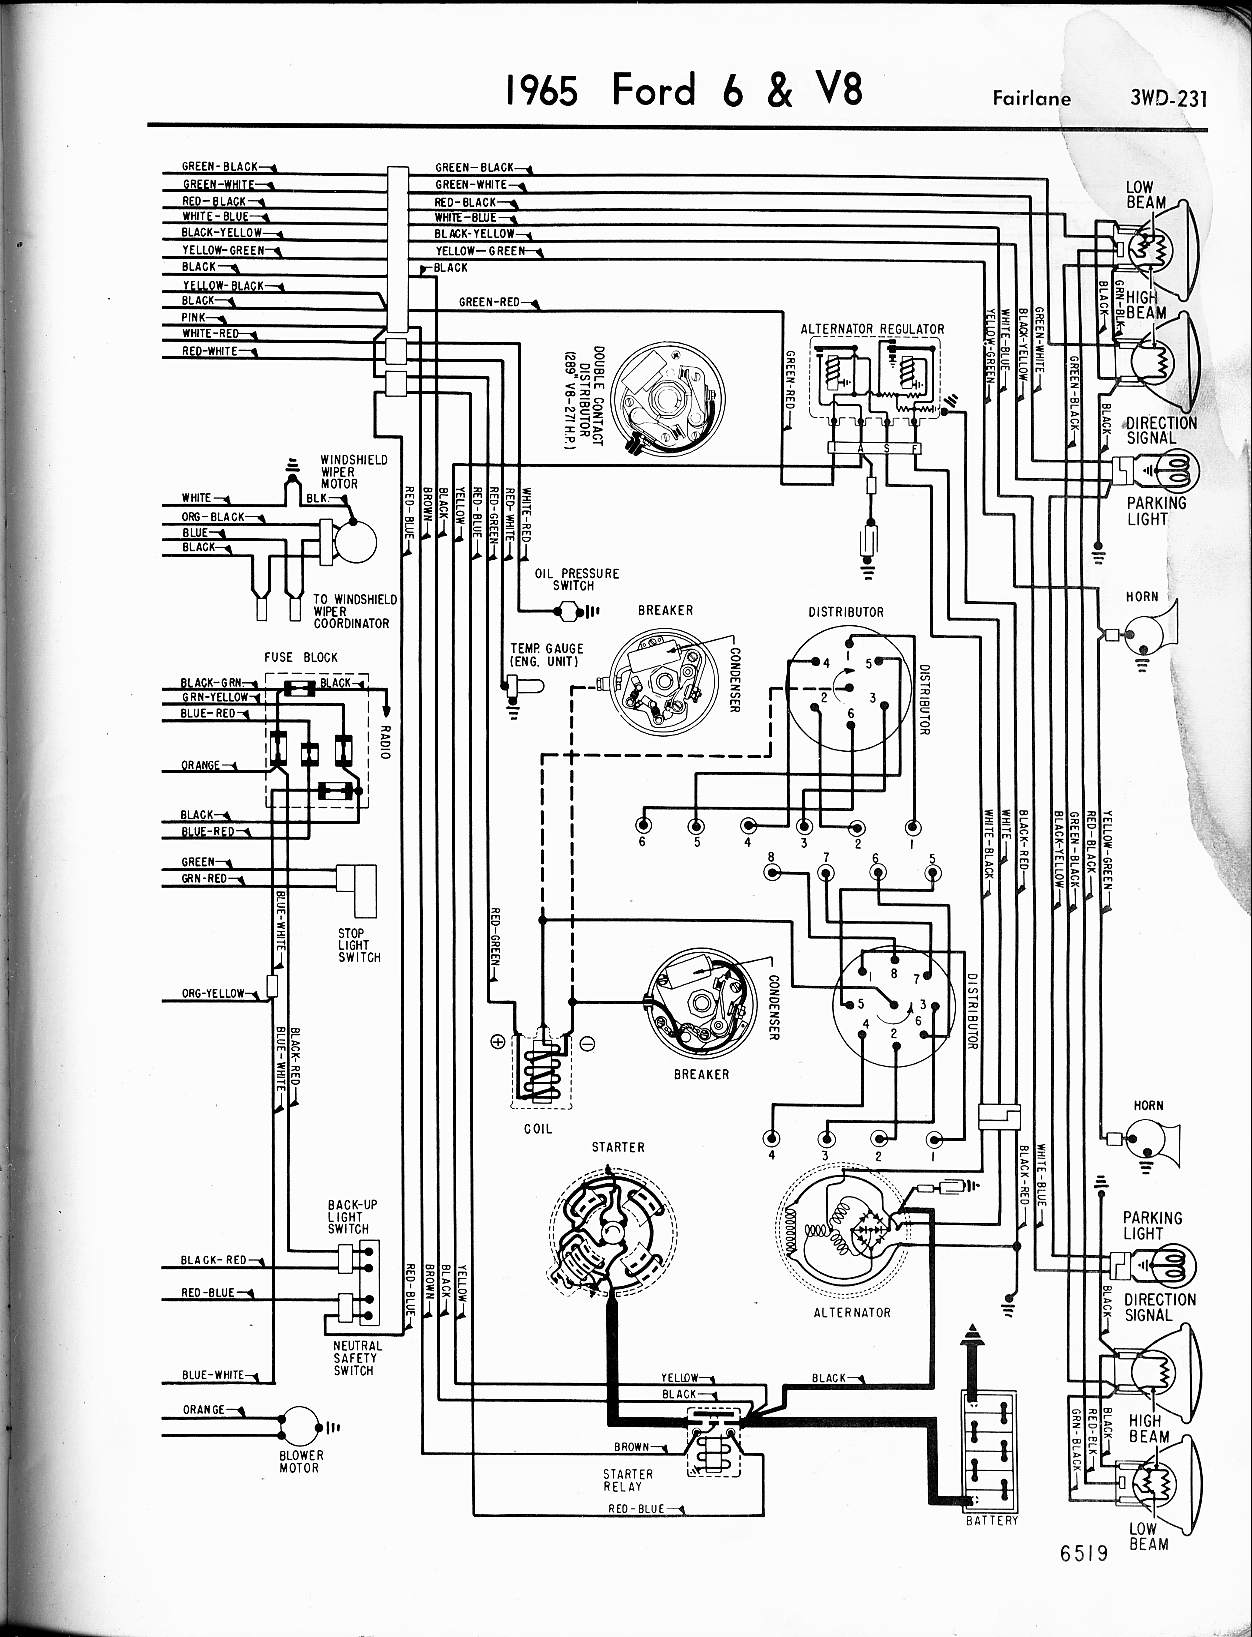 1963 Ford Galaxie 500 Wiring Diagram Free